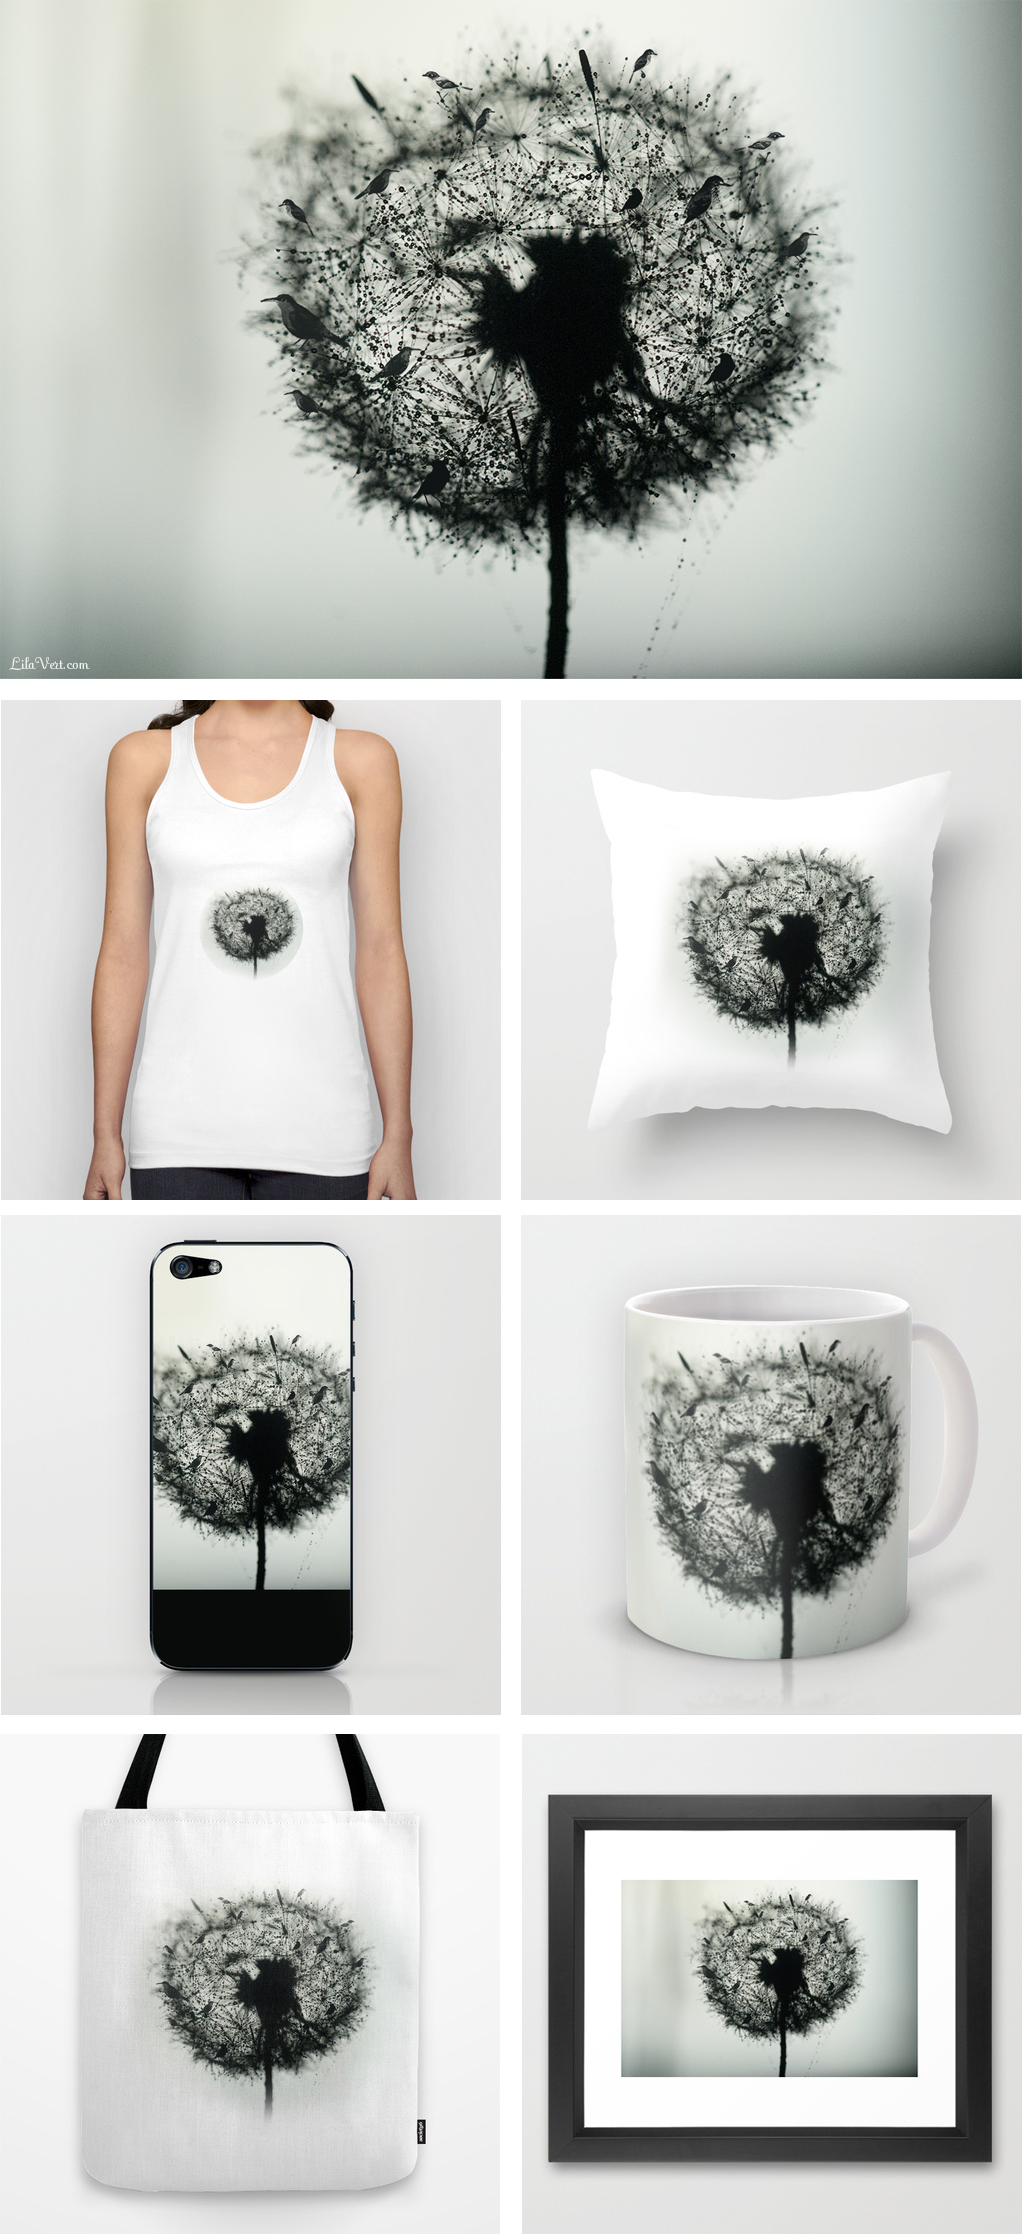 Dandelion Birds Photographic T-shirt, iphone, ipad etc…